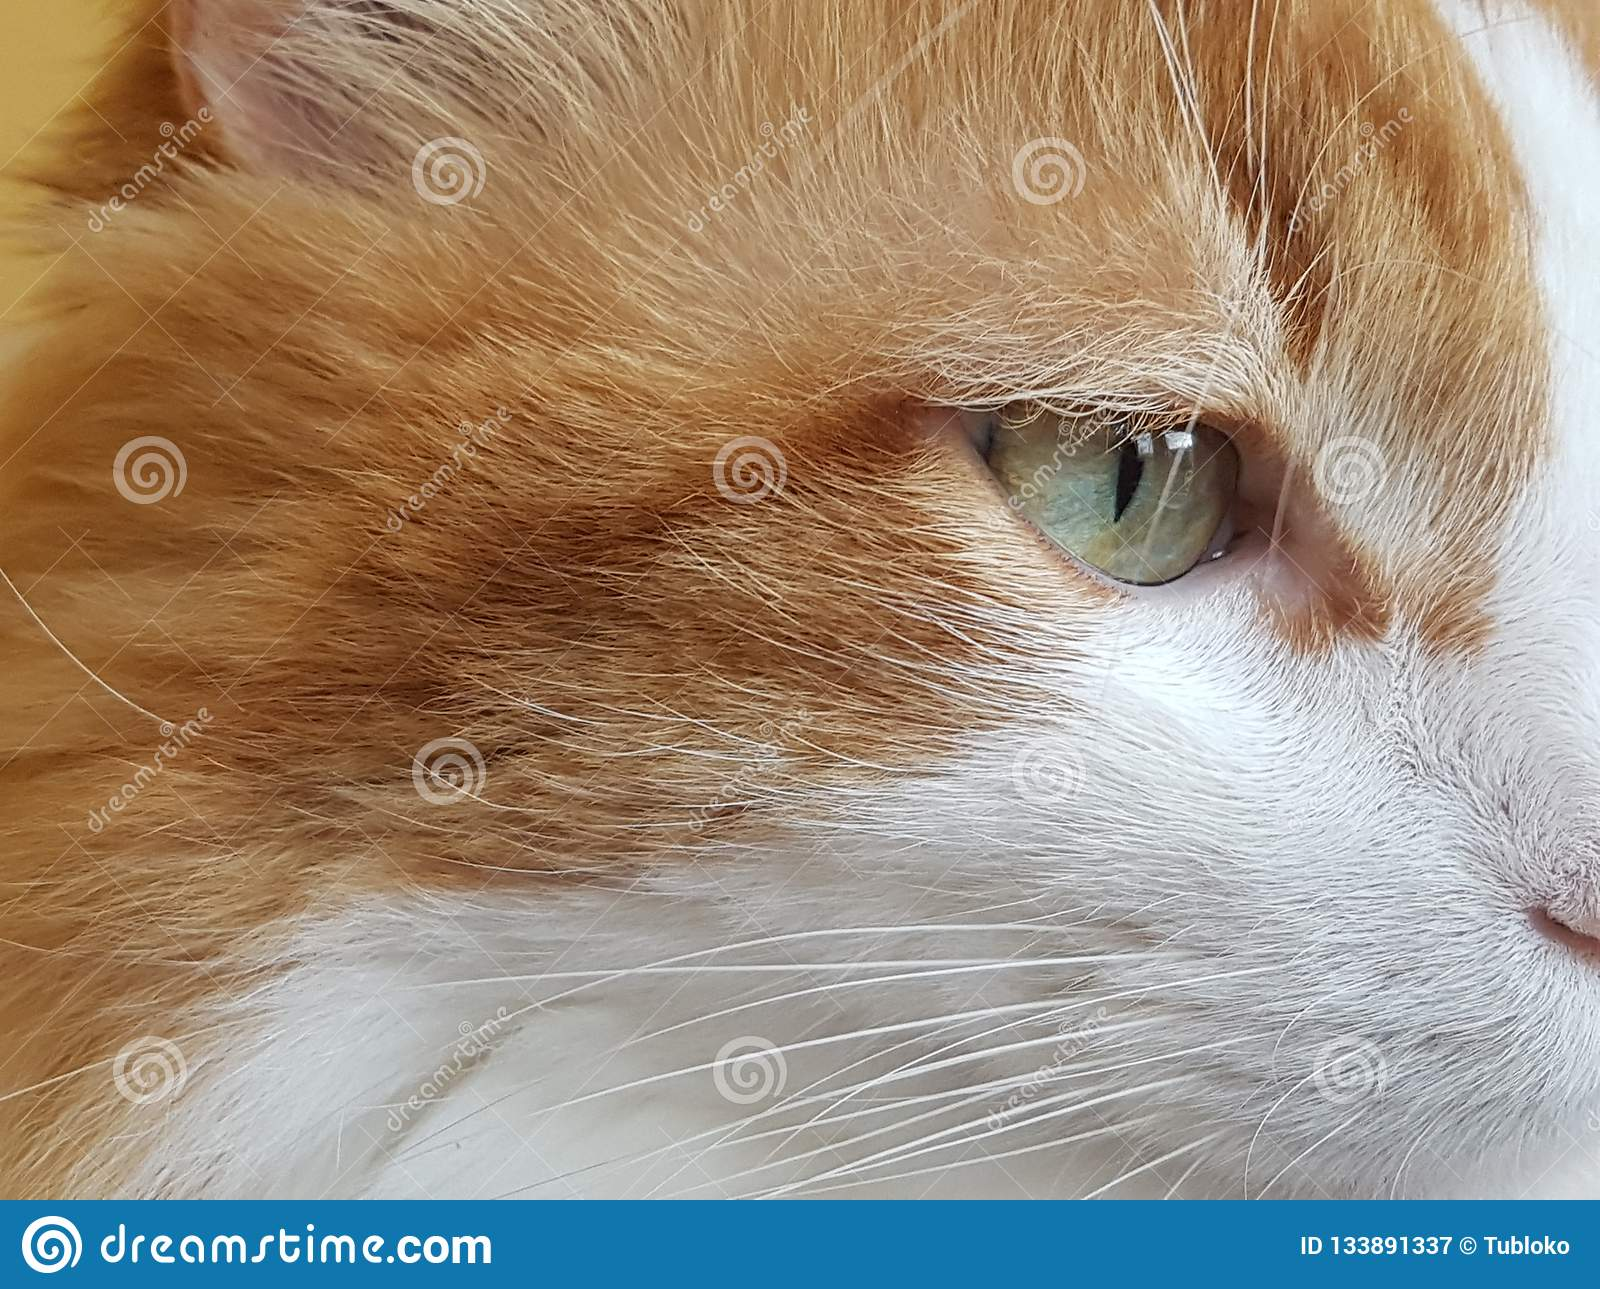 Cat Side View Stock Images Download 8 172 Royalty Free